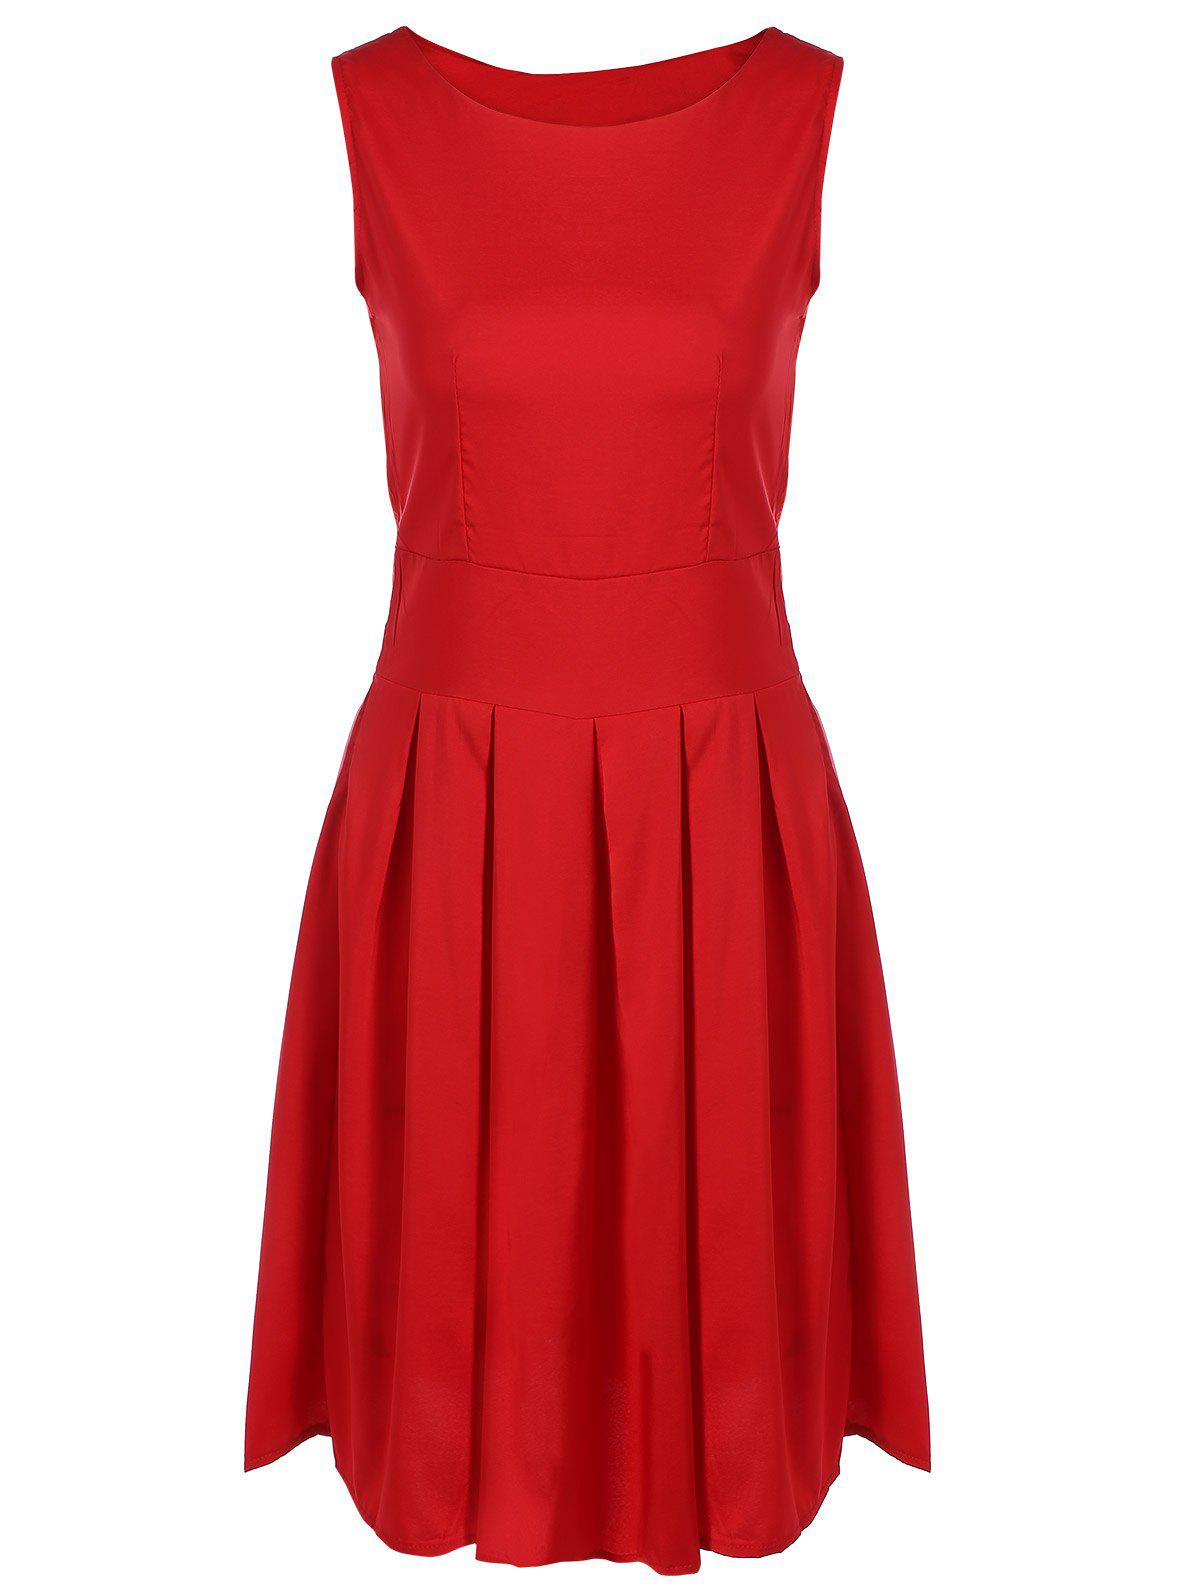 Scoop Neck Vintage Swing DressWomen<br><br><br>Size: 2XL<br>Color: RED